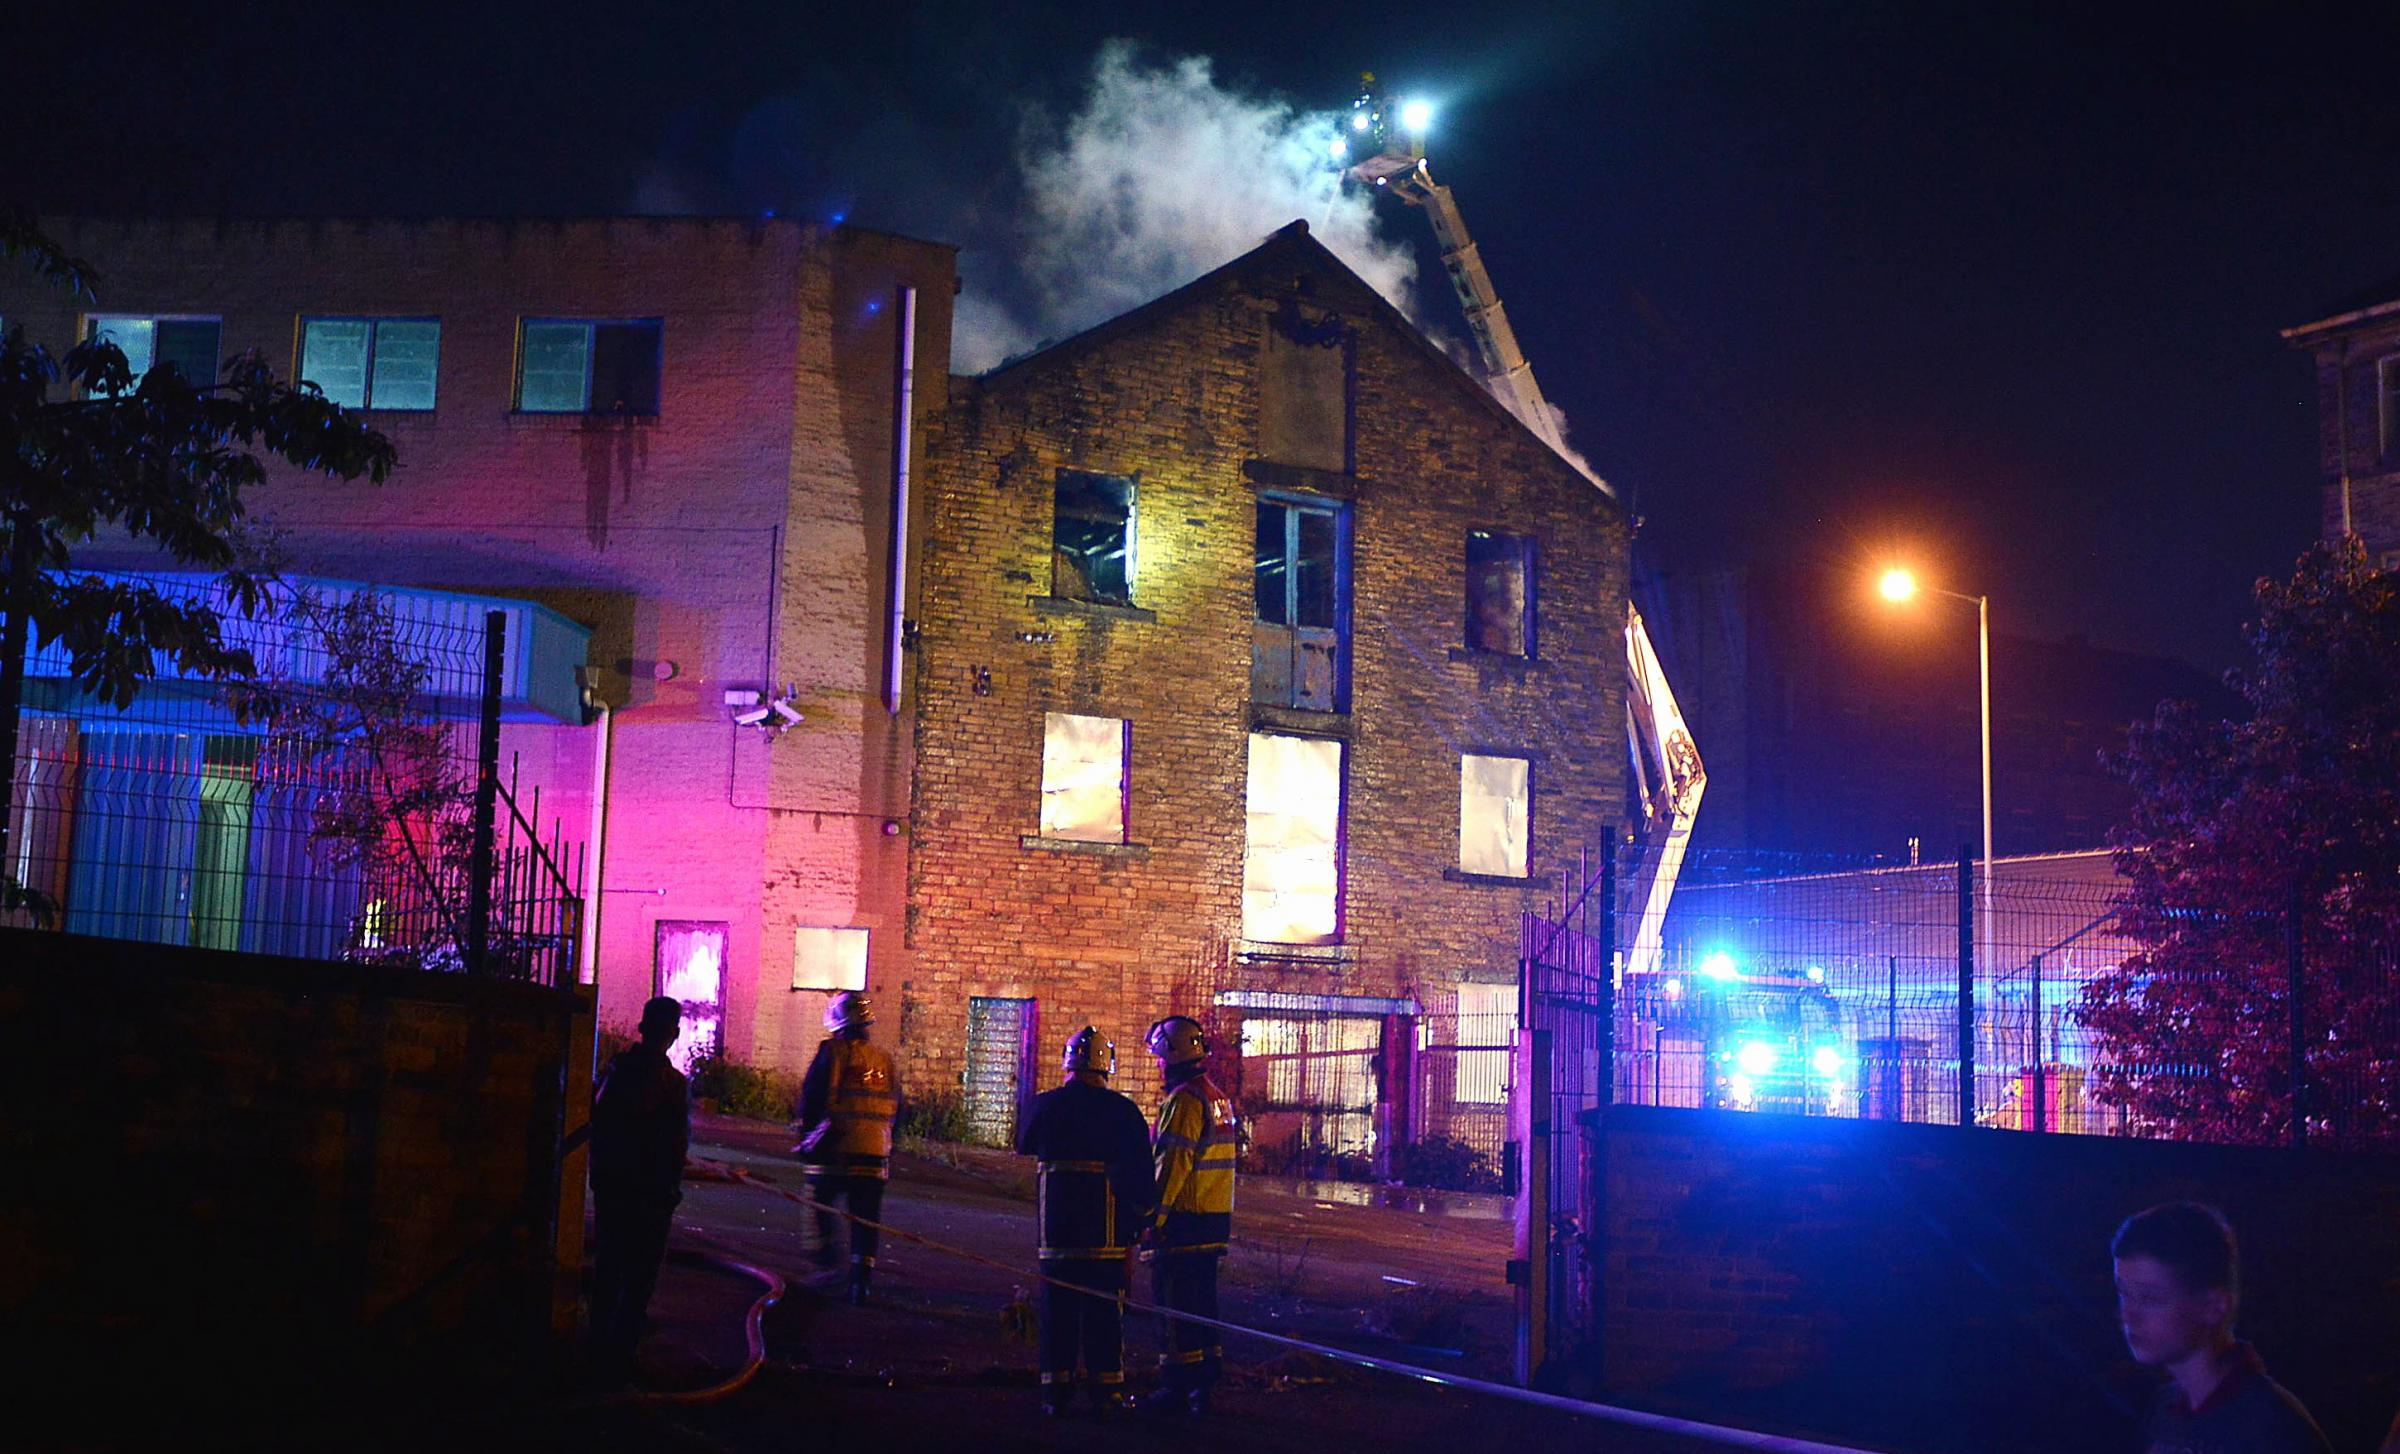 Firefighters tackle the factory fire on Monday night